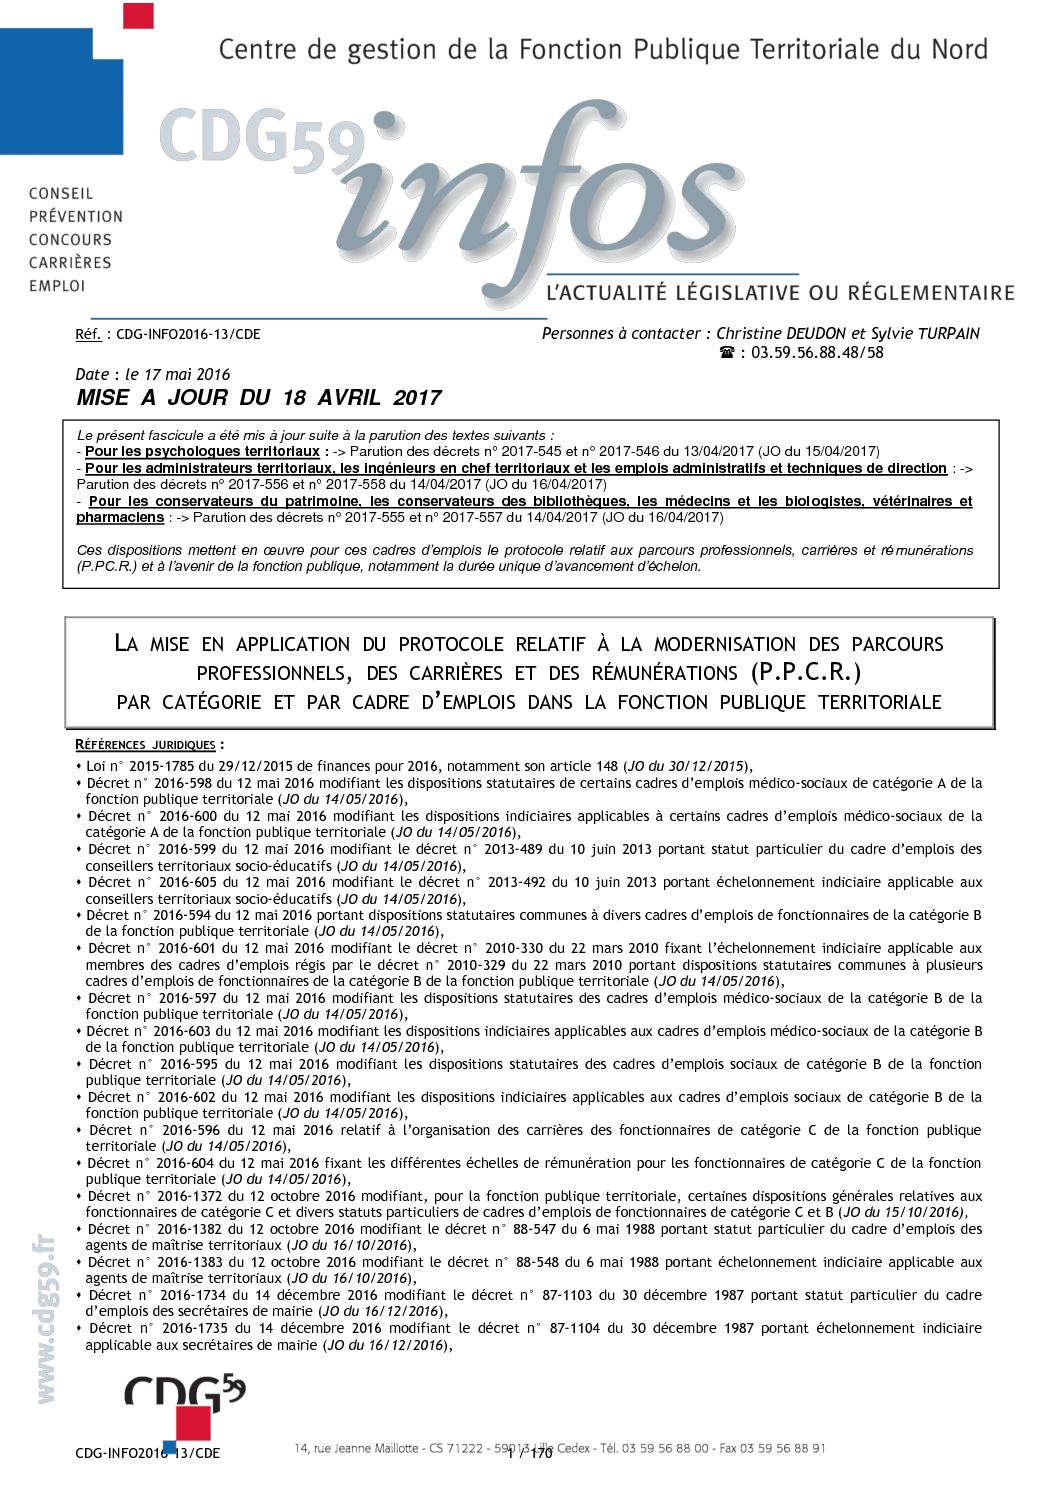 Cdg59 Calendrier Concours 2020.Calameo Cdg 59 Ppcr